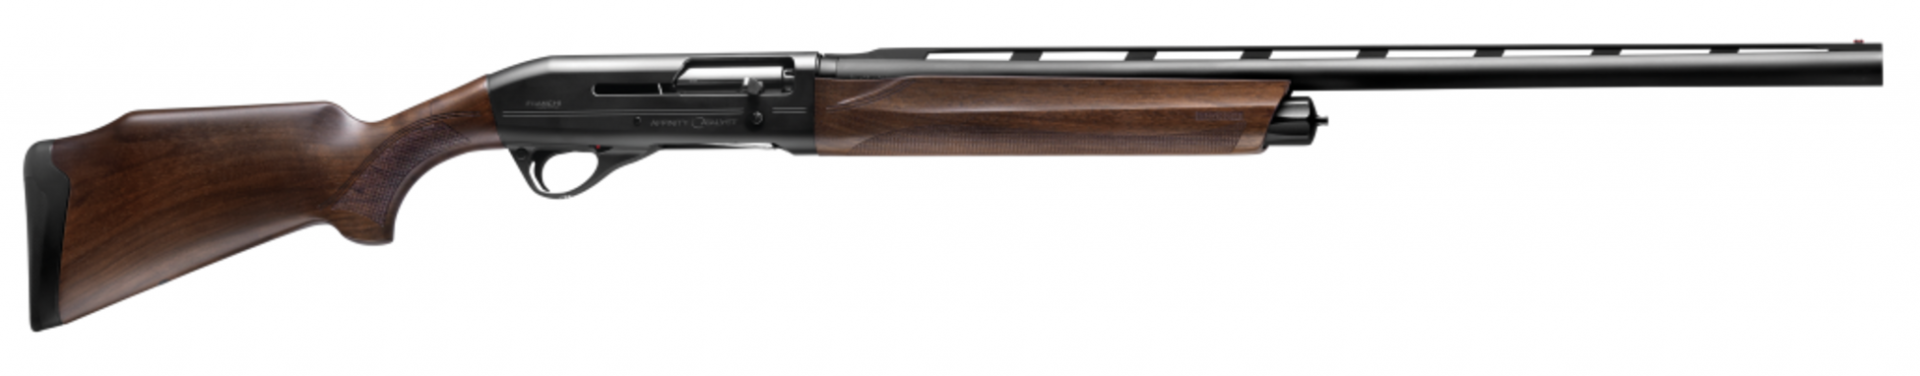 "Affinity Catalyst |12ga 28"" Barrel, 3"" Chamber, Inertia Driven Action, A-Grade Satin Walnut Stock, 13-7/8"" Length of Pull, IC, M, F Chokes and Wrench, Shim Kit, 4+1 Capacity"